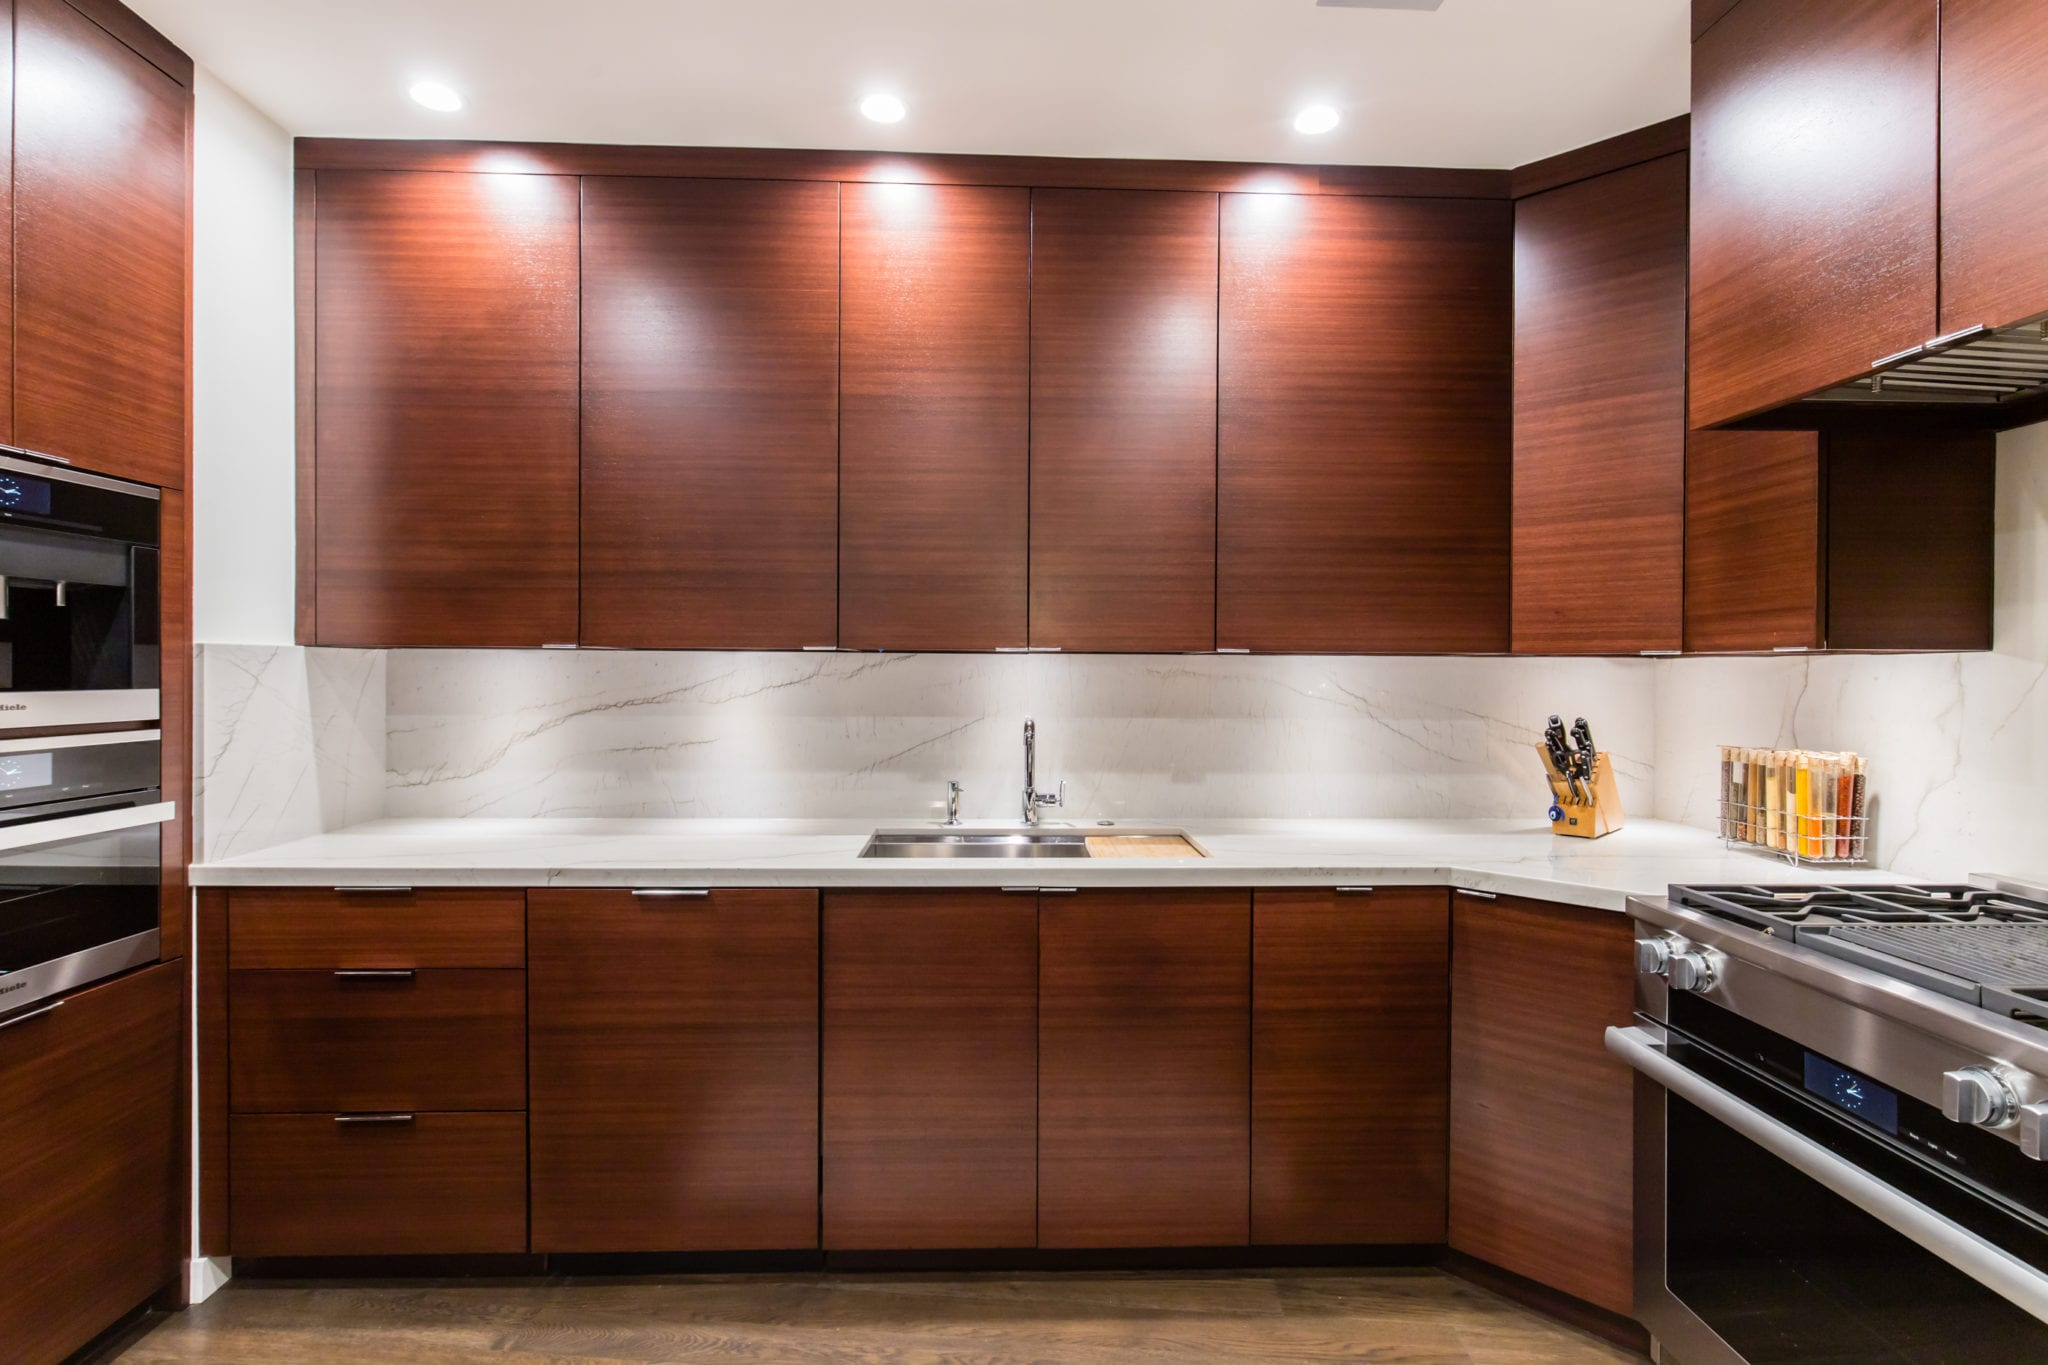 Kitchen-2-story-high-rise-condo-remodel-The-Travis-Katy-Trail-Custom-Renowned-Stykecraft-Cabinets